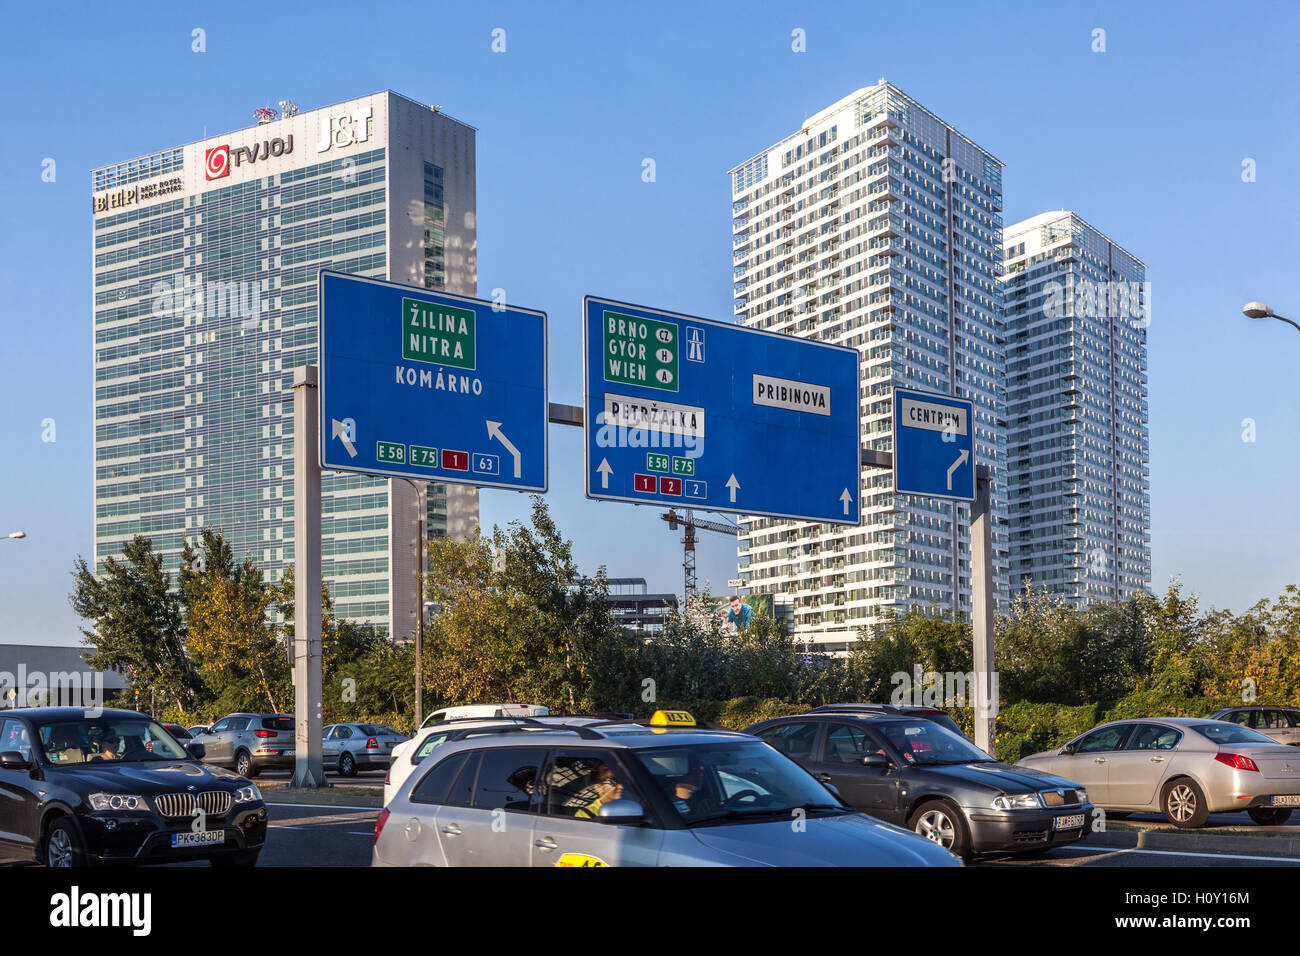 New high-rise apartments and offices, Bratislava, Slovakia, Europe - Stock Image